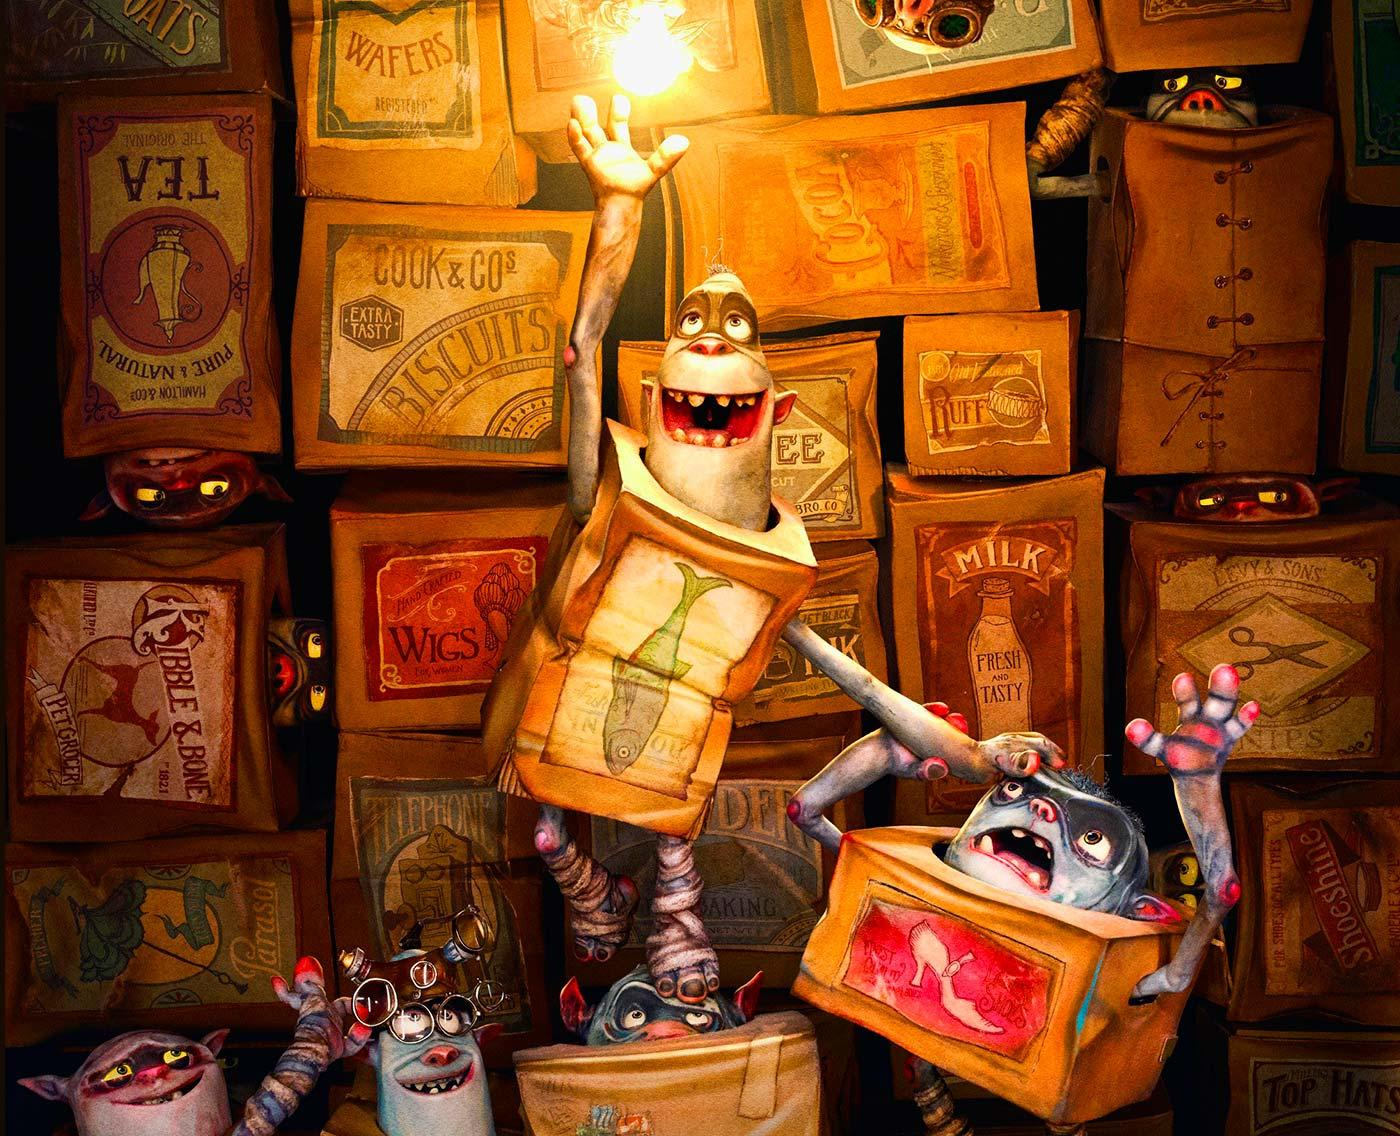 A scene from The Boxtrolls